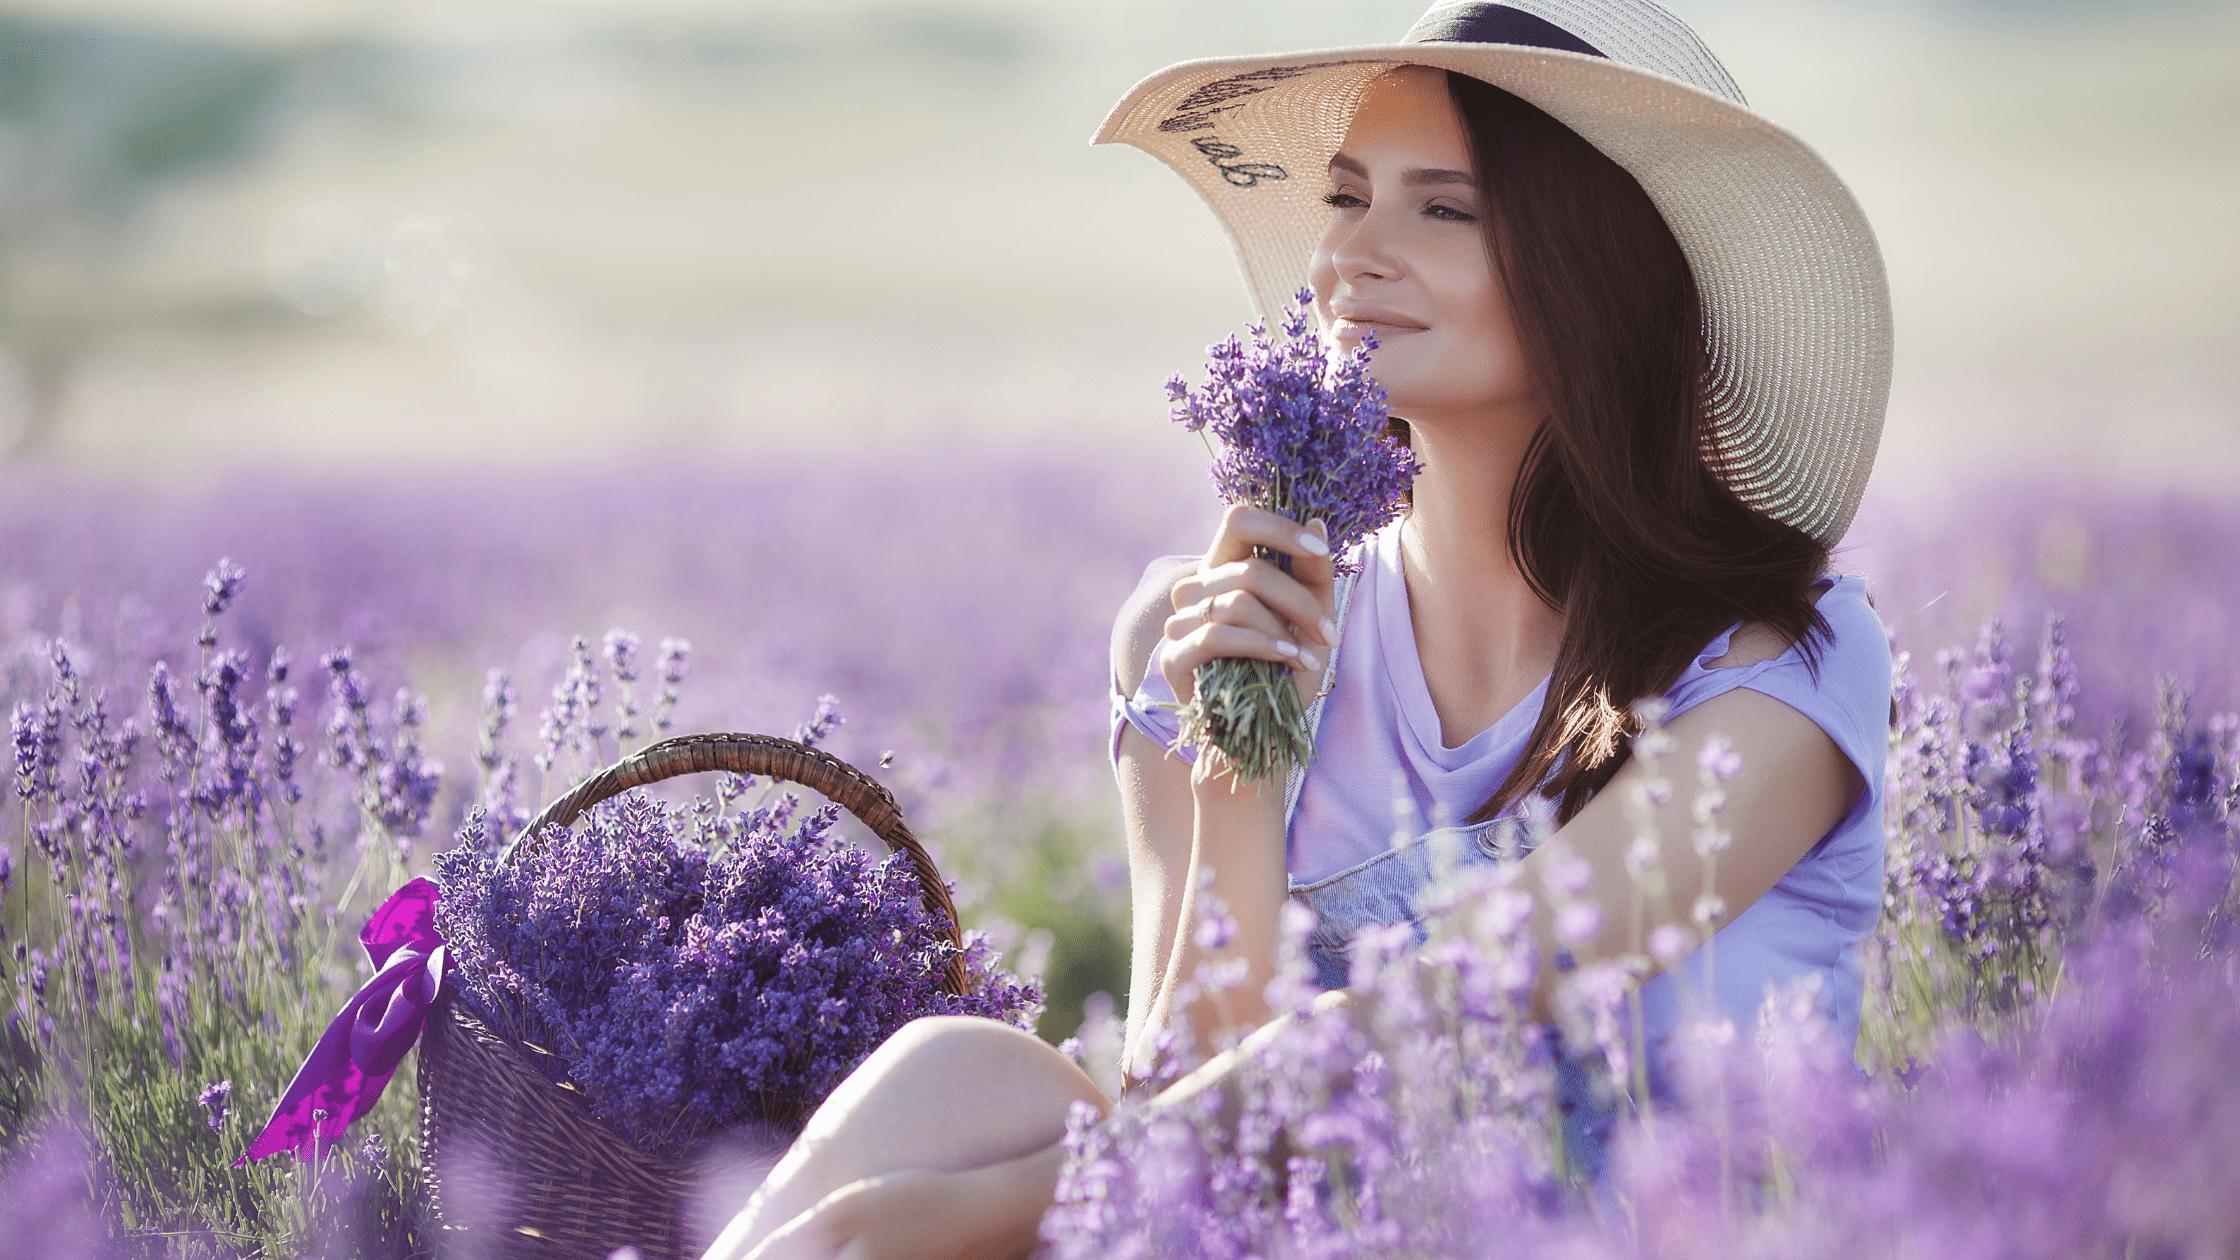 woman with hat on in in lavender field smelling the terpenes in the flowers